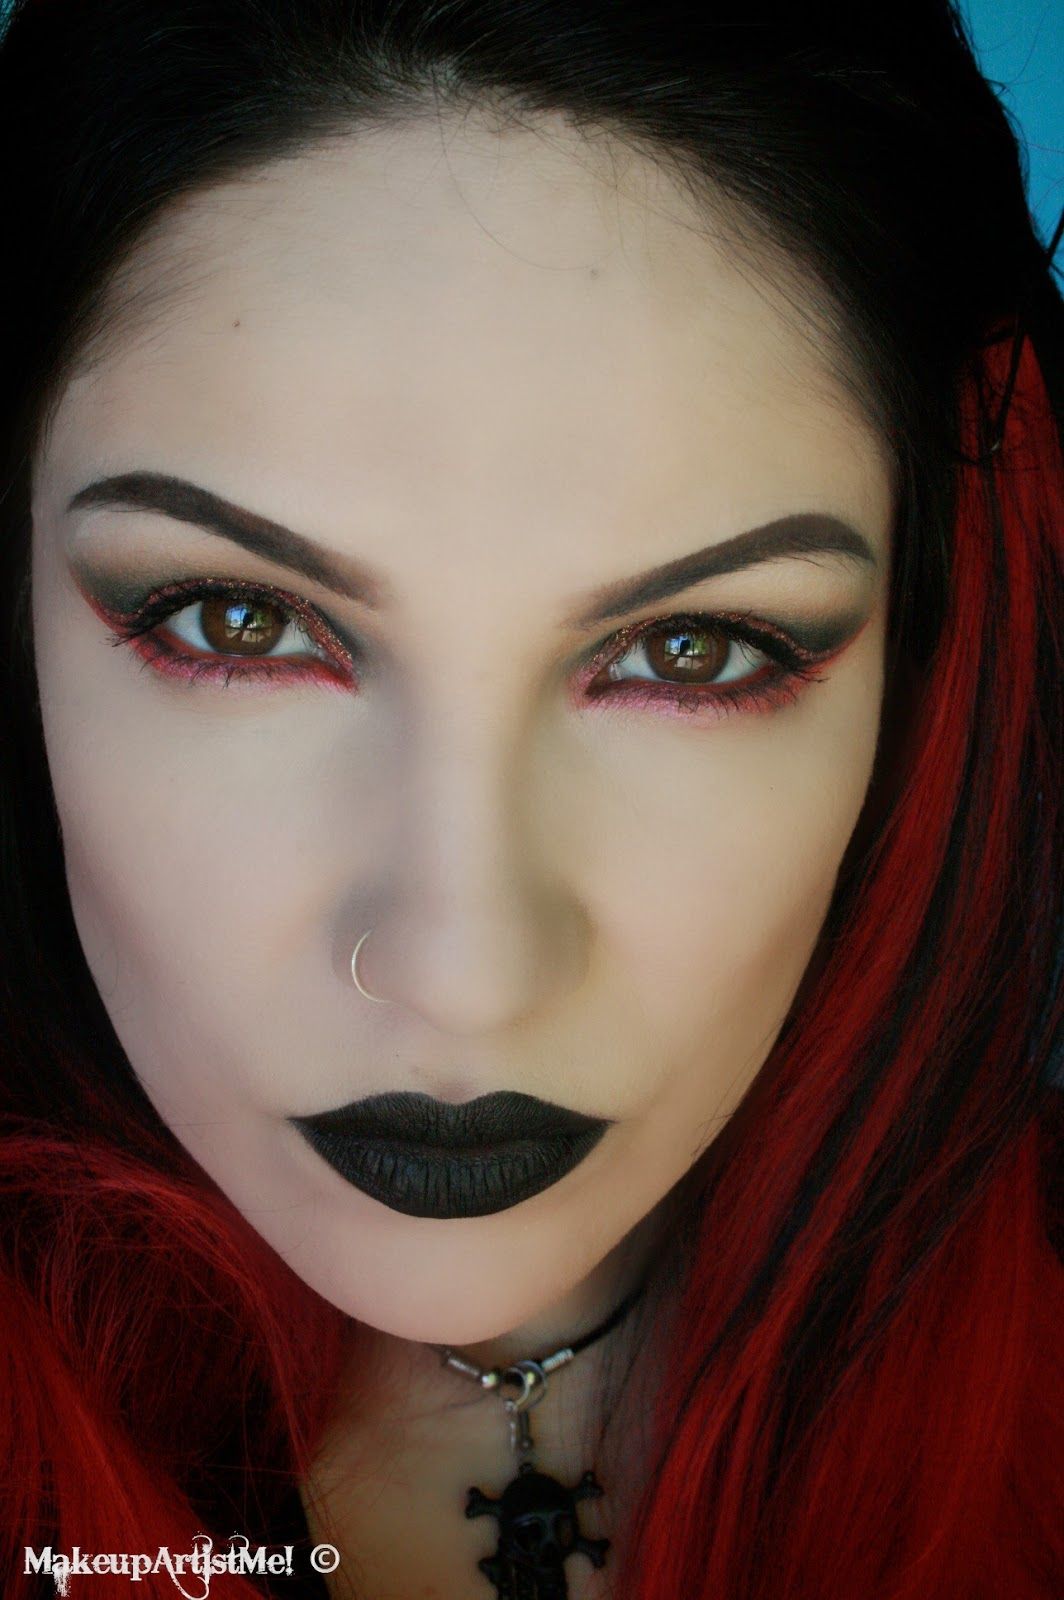 Make-up Artist Me!: My Goth! Makeup Tutorial